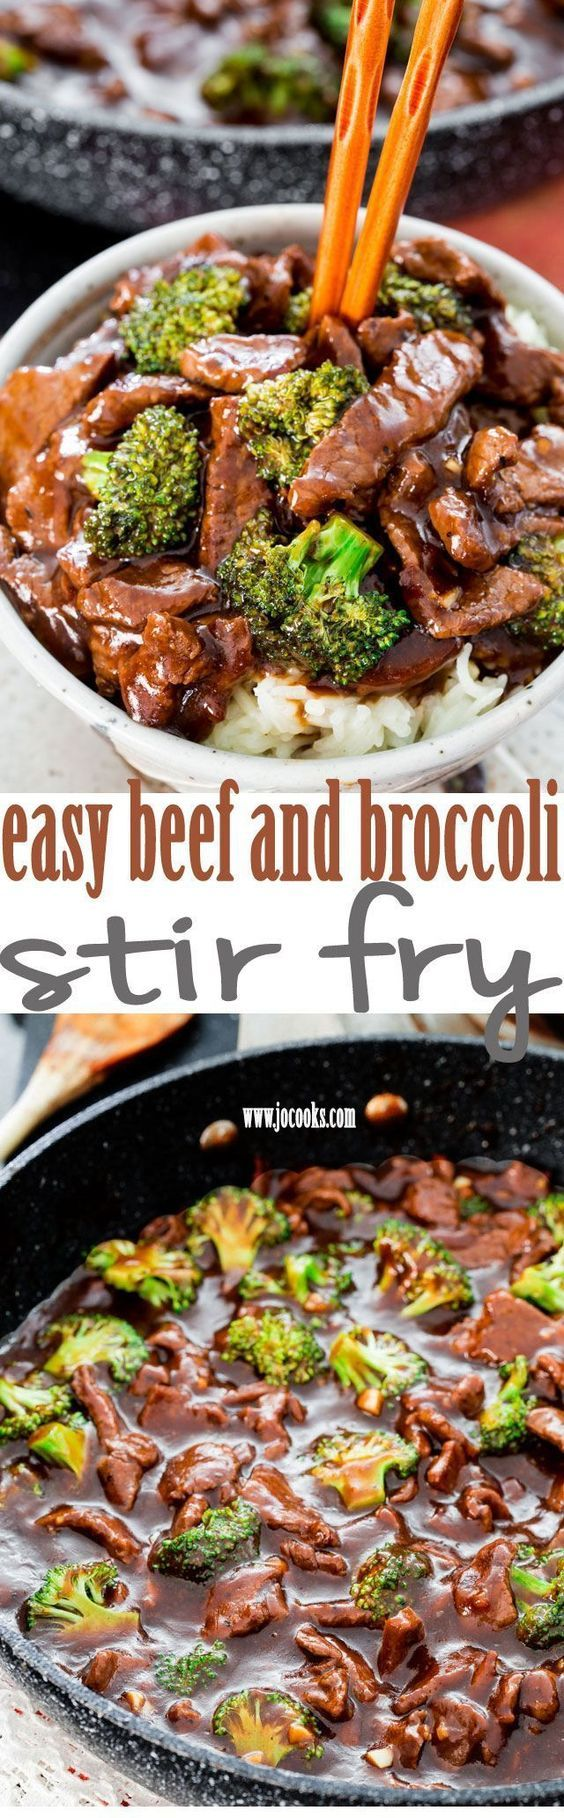 Easy Beef and Broccoli Stir Fry - forget take-out! In 15 minutes you can have this insanely delicious beef and broccoli stir fry! Way better than restaurant!